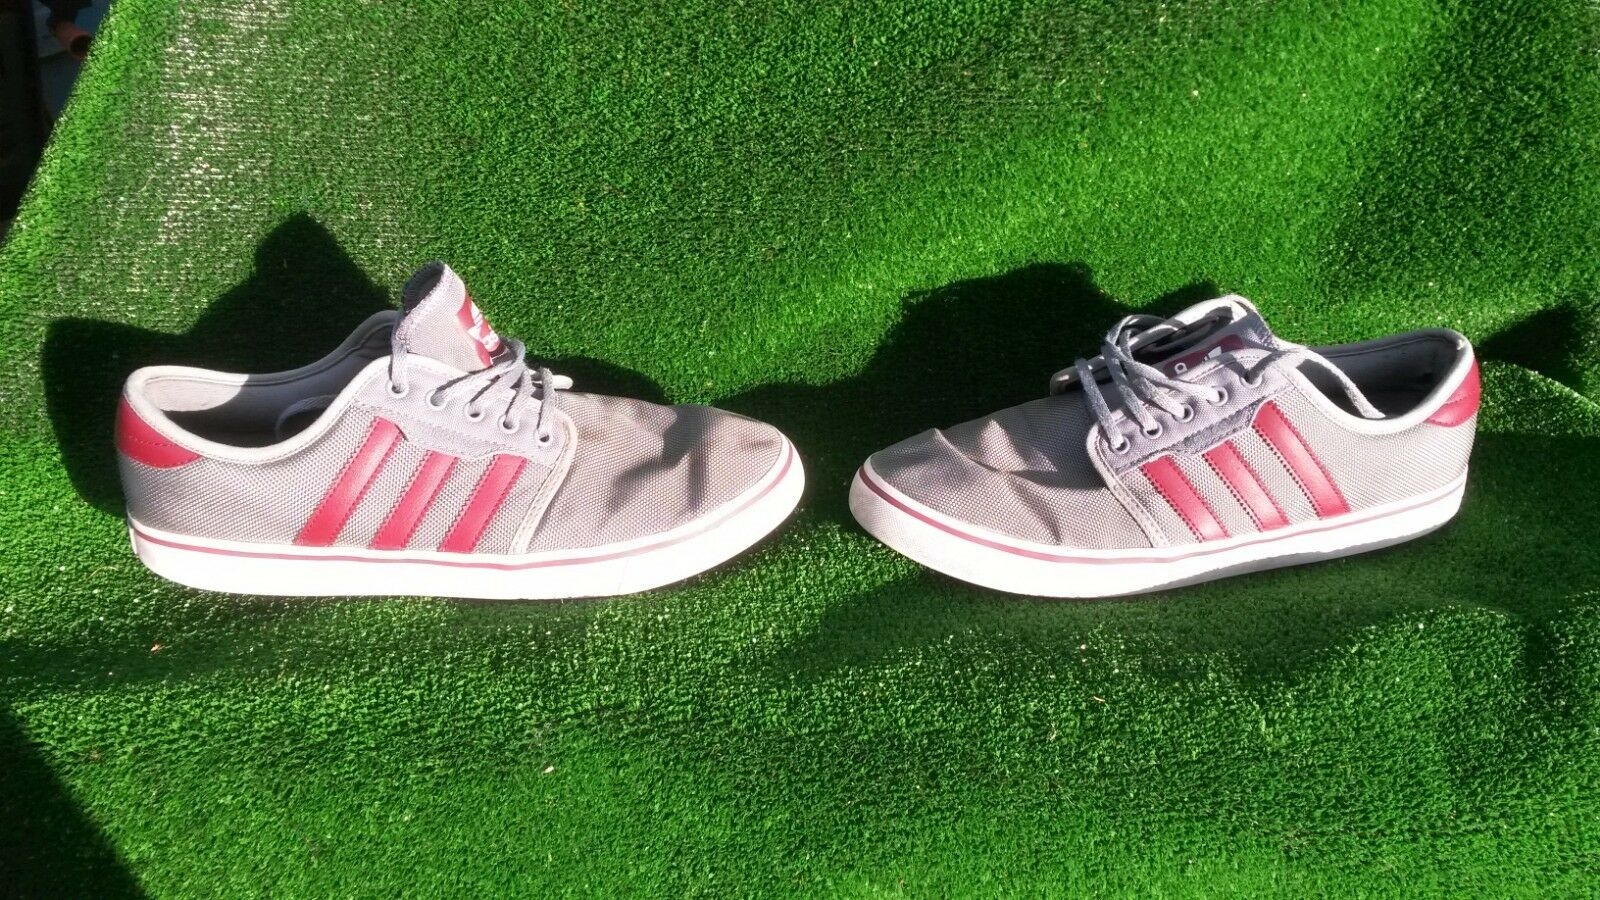 Adidas Seeley Men's Grey/Red Sports Shoes/Trainers. Comfortable New shoes for men and women, limited time discount